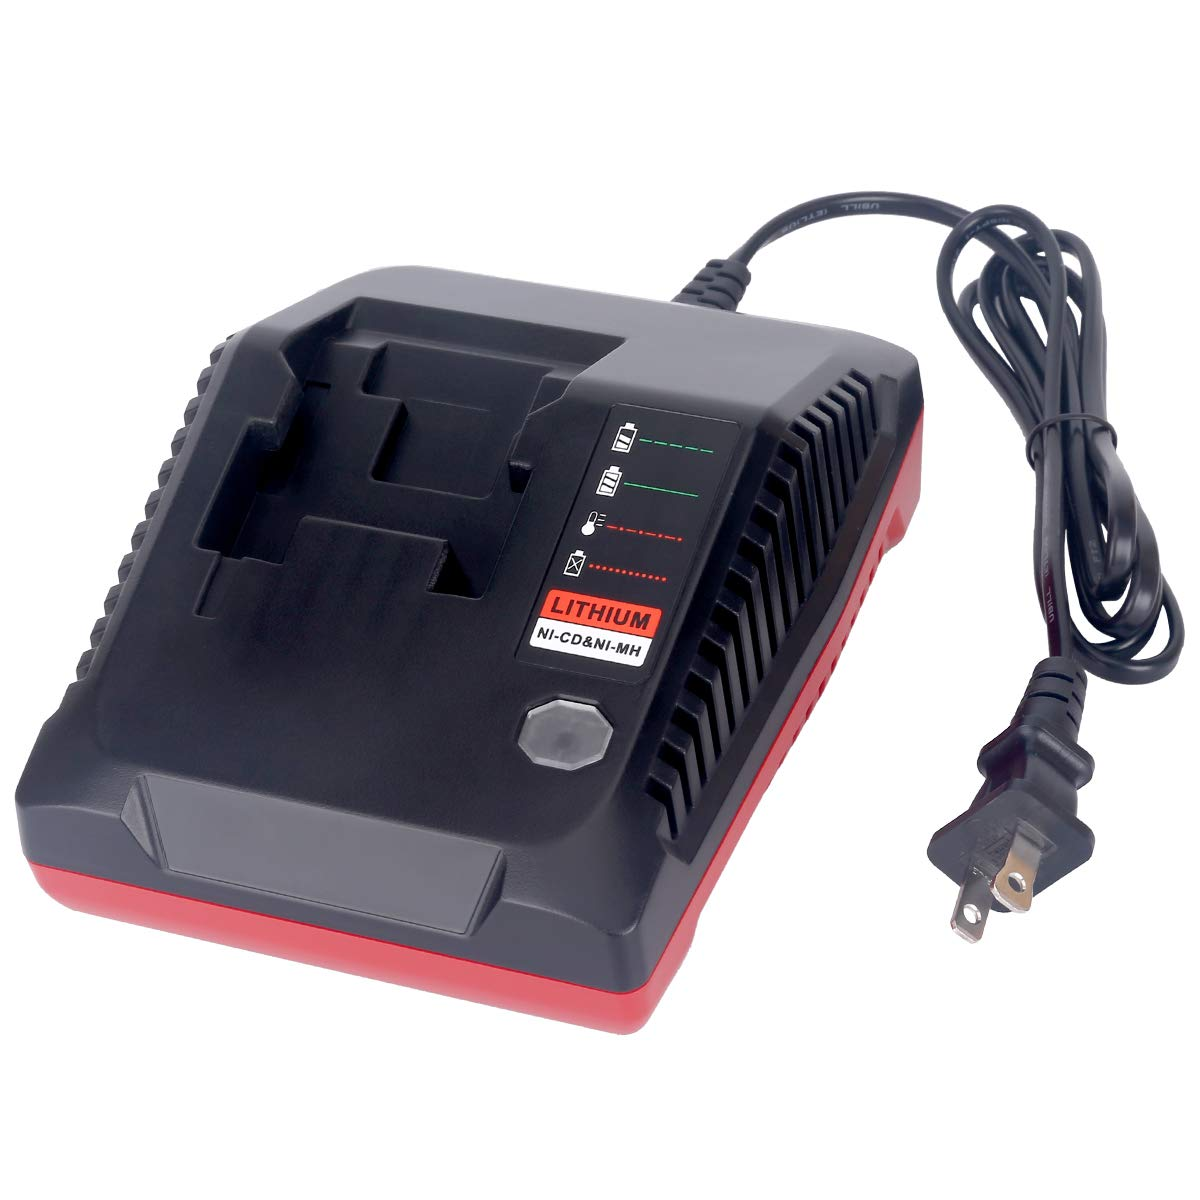 18-Volt Multi-Chemistry Battery Charger for Porter Cable PCXMVC Lithium Ion & NiCad NiMh Slide PC18B PC18B-2 PC18BL PC18BLX PCC489N Cordless Power Tool Battery